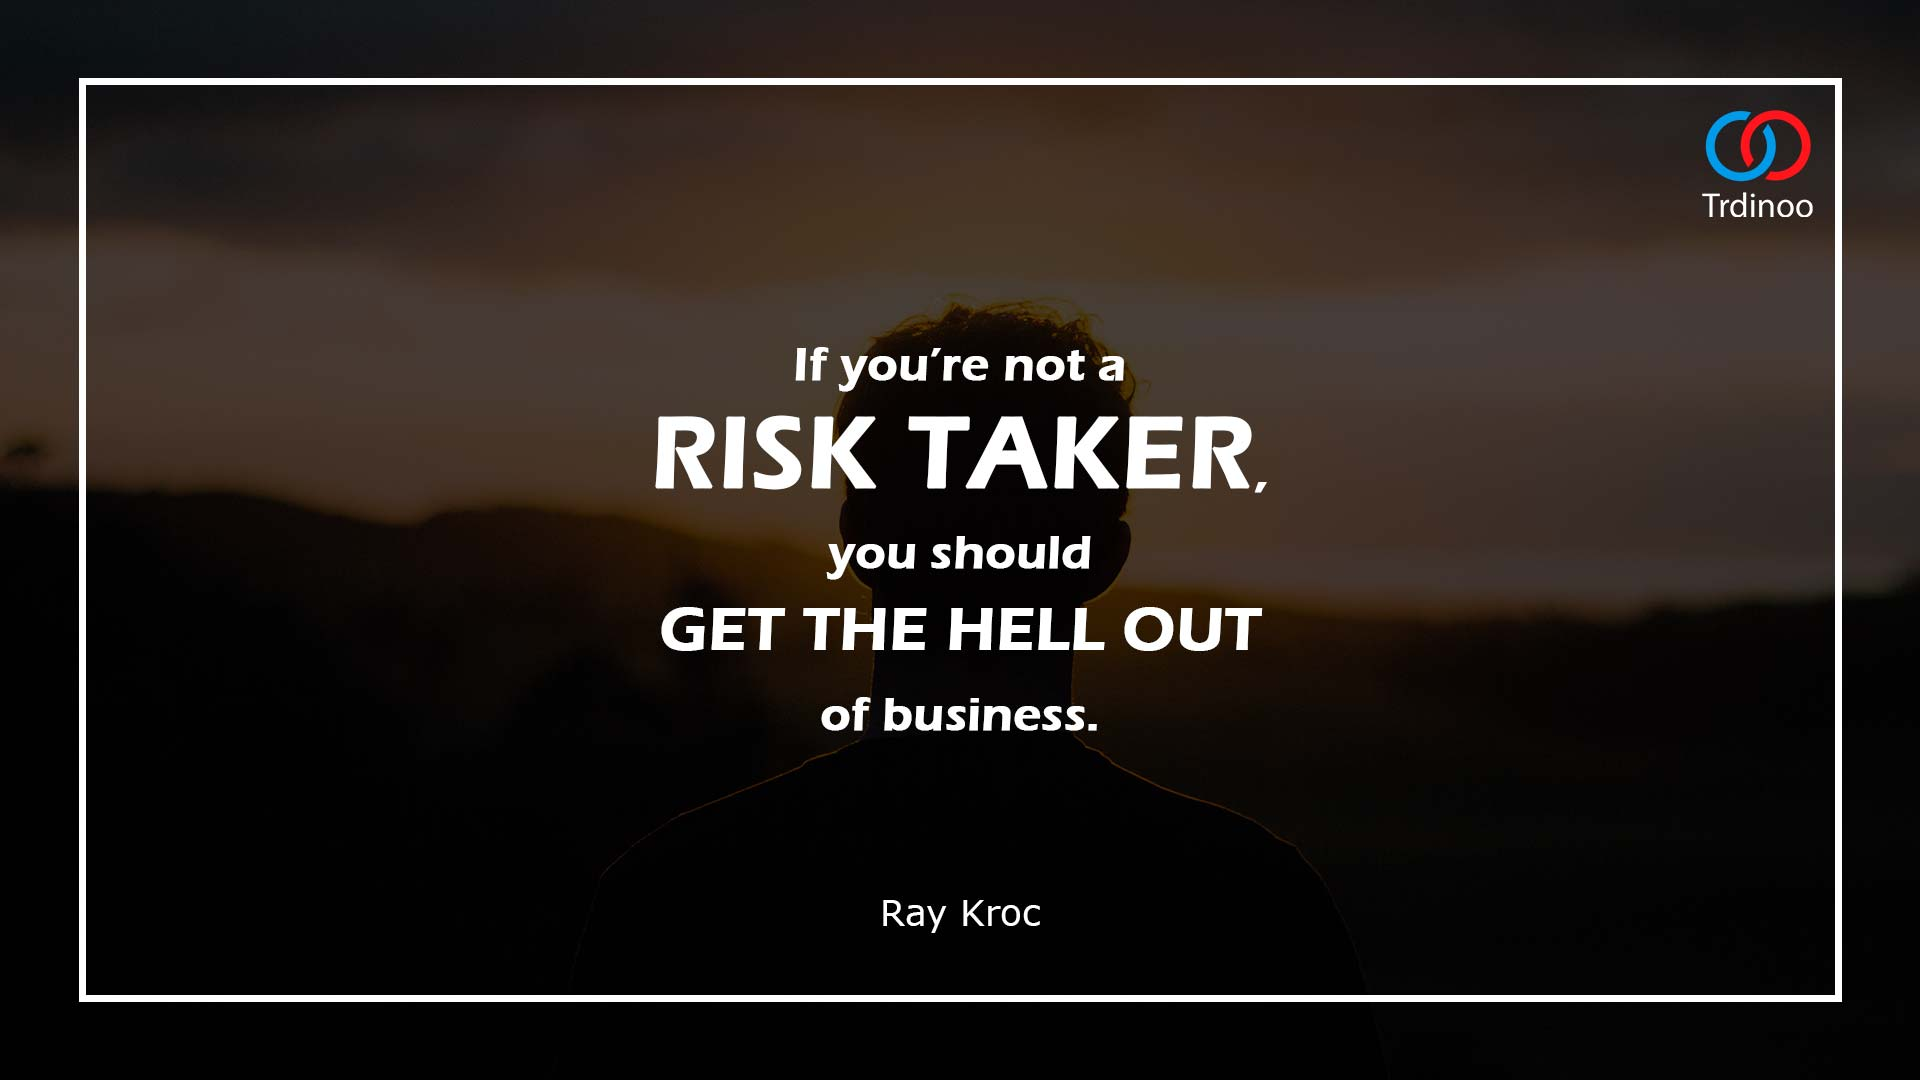 Not Afraid to Take Risks